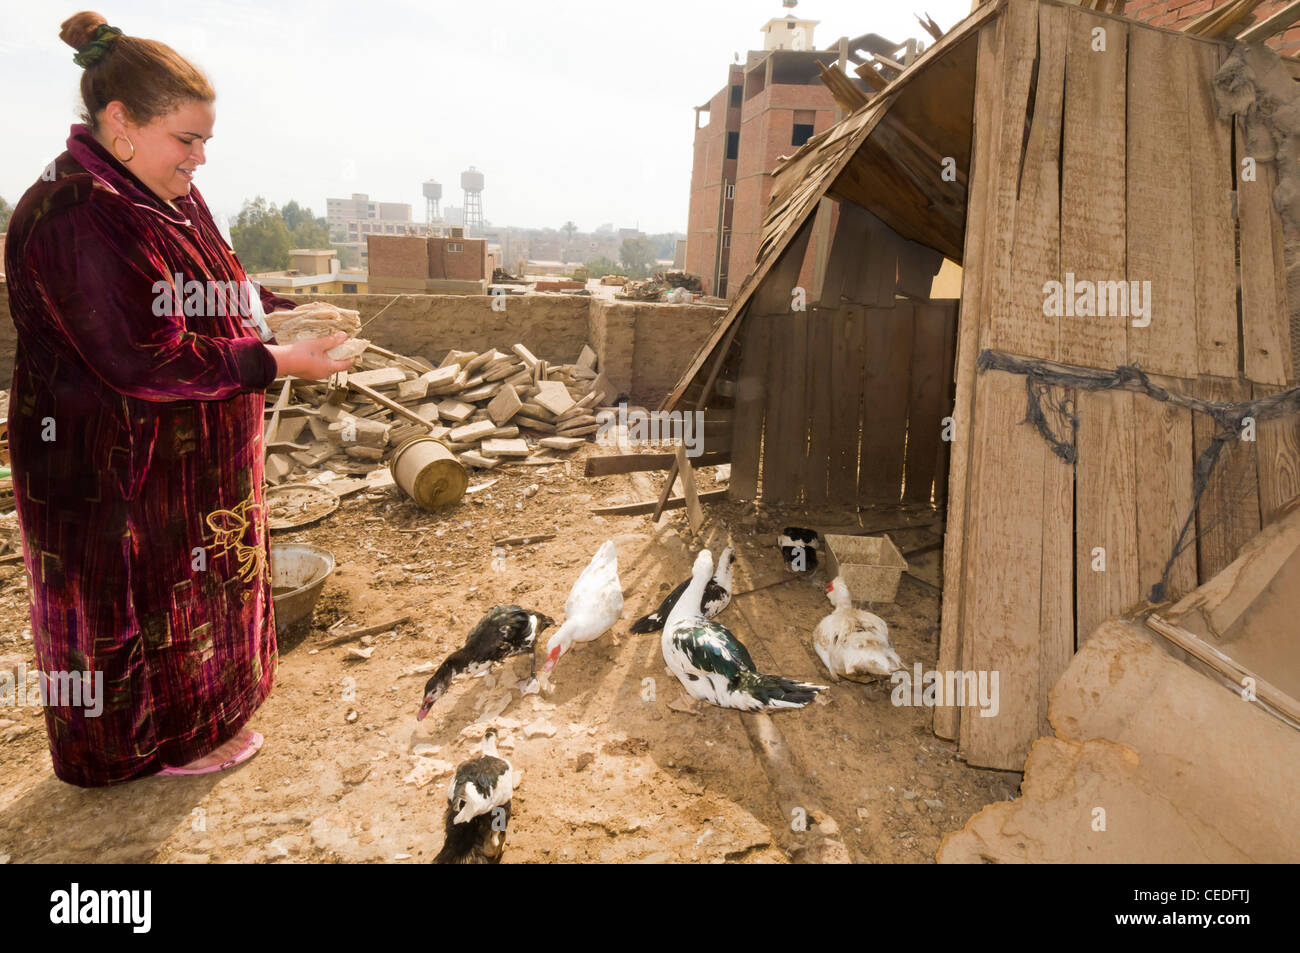 Woman breeding ducks on the rooftop of her house, a common practice in Egypt - Stock Image